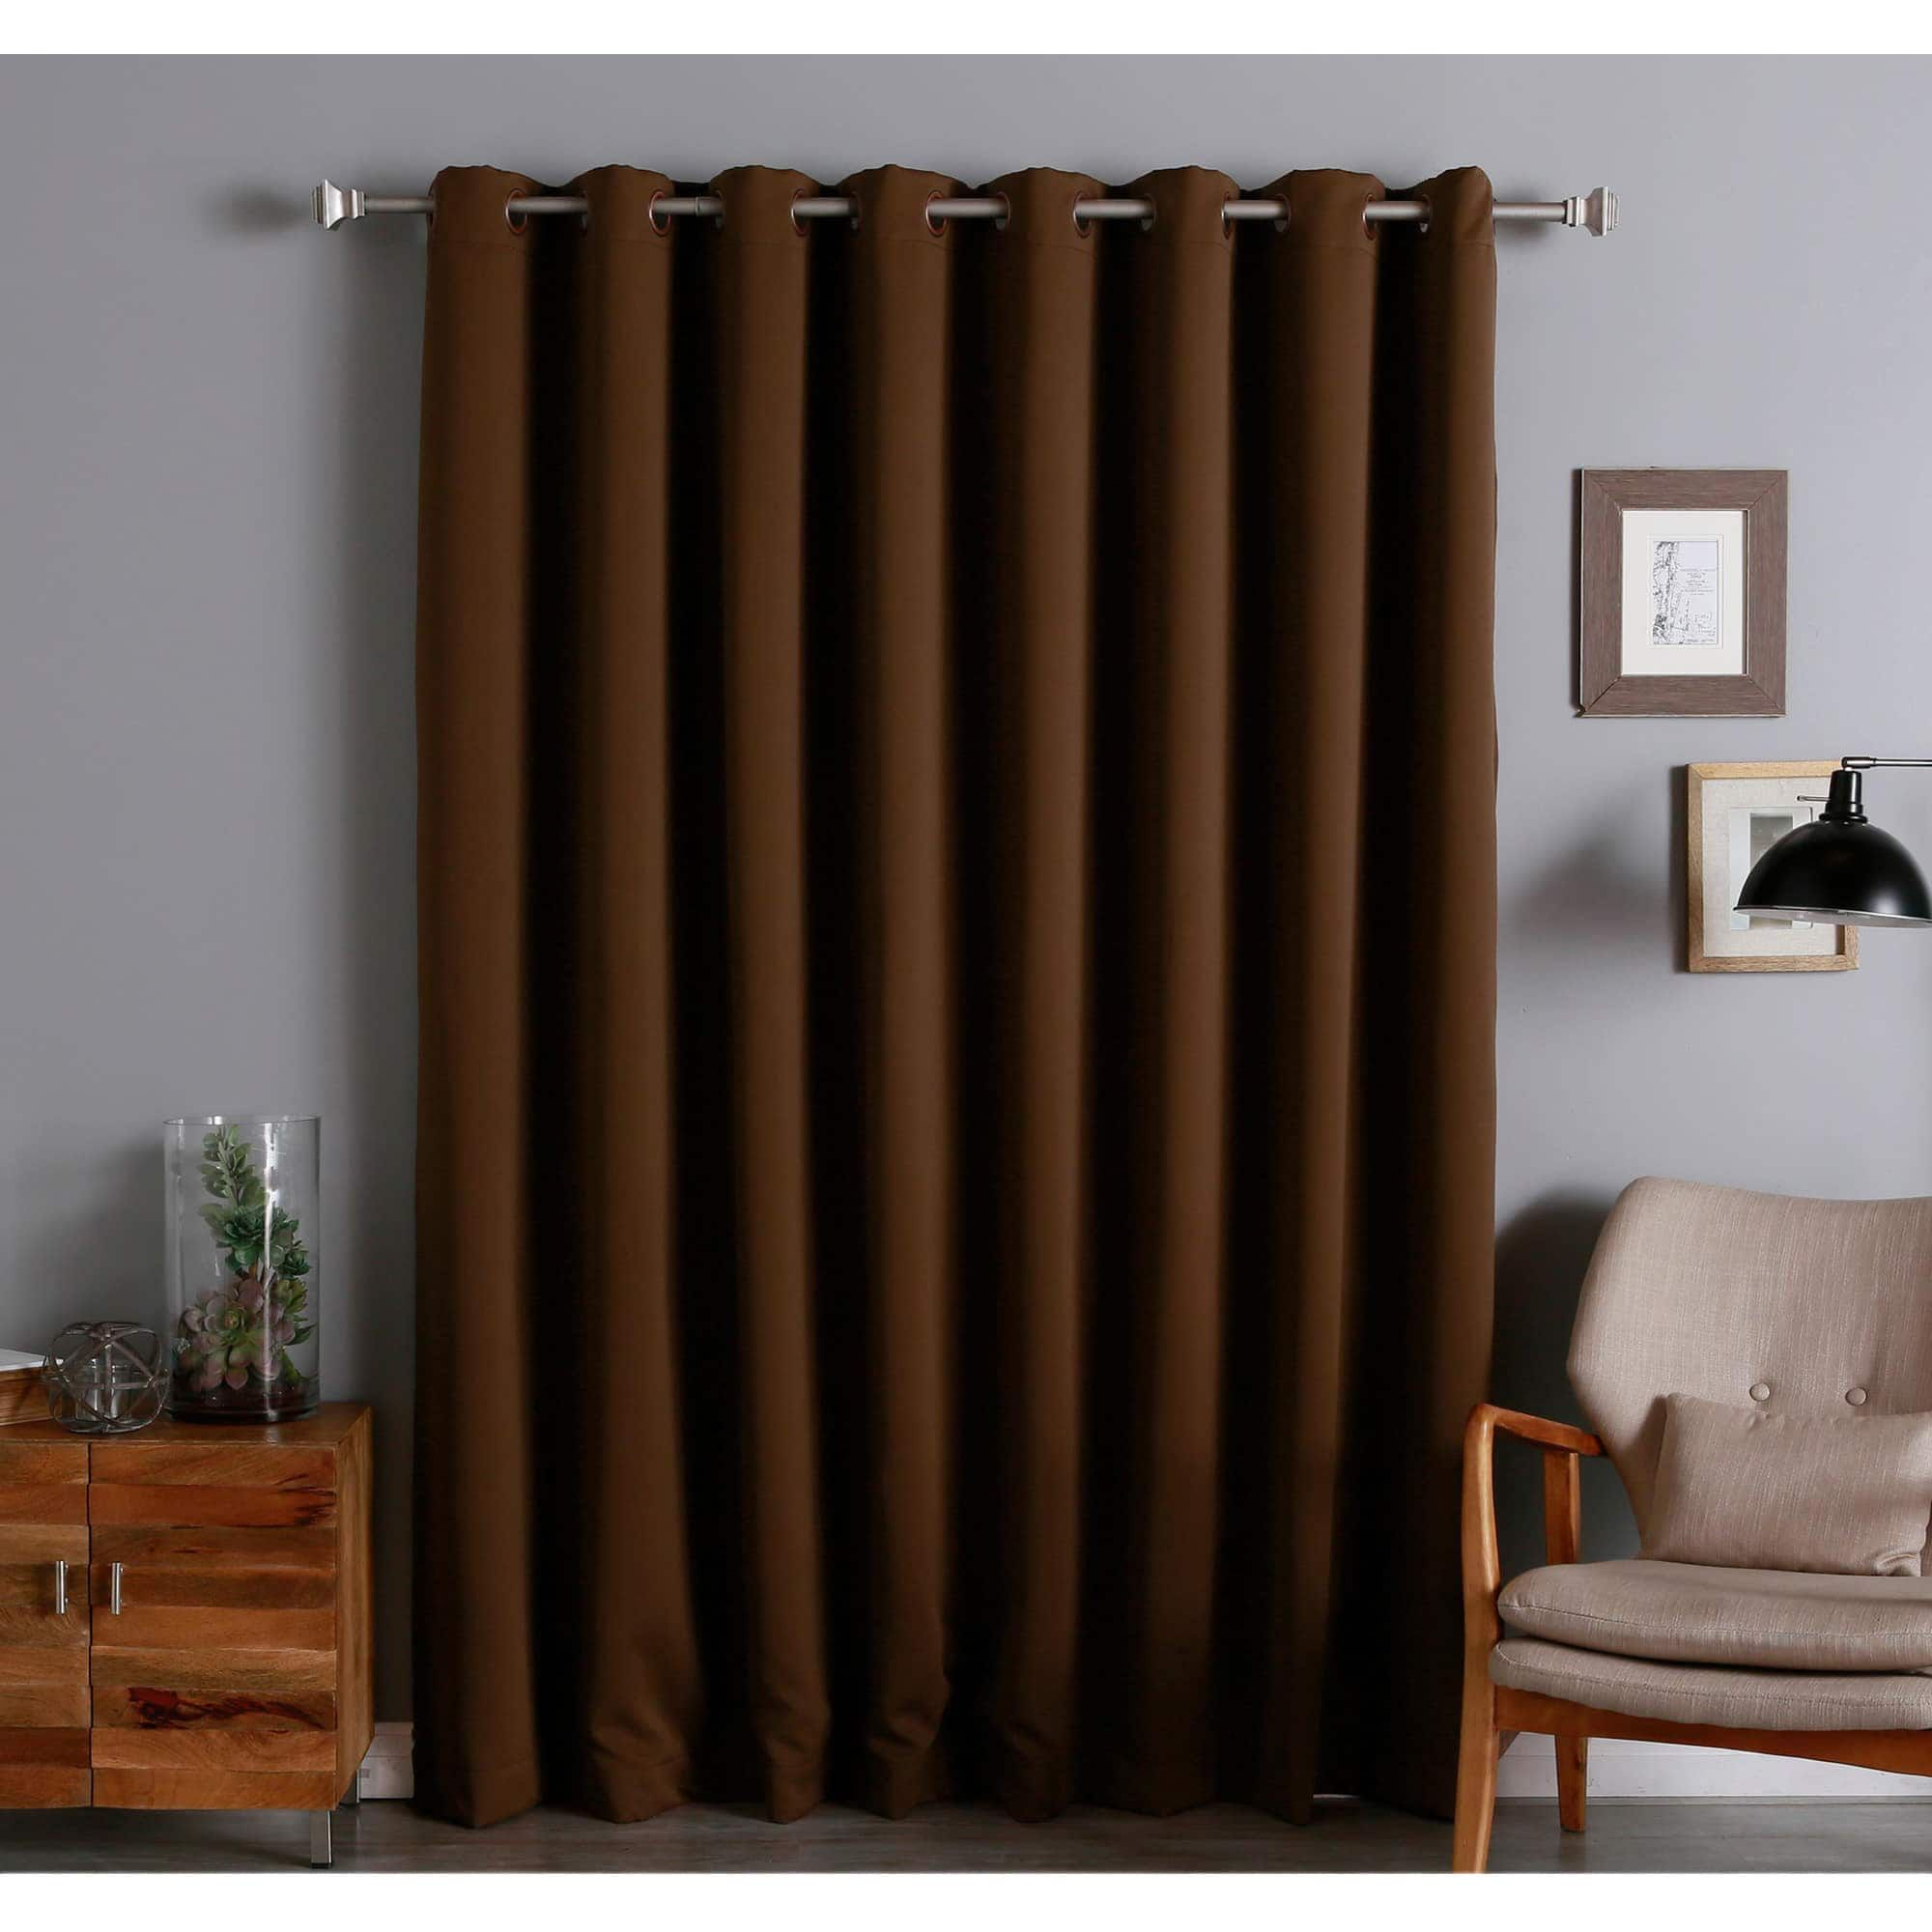 Aurora Home Extra Wide Thermal 96 Inch Blackout Curtain Panel